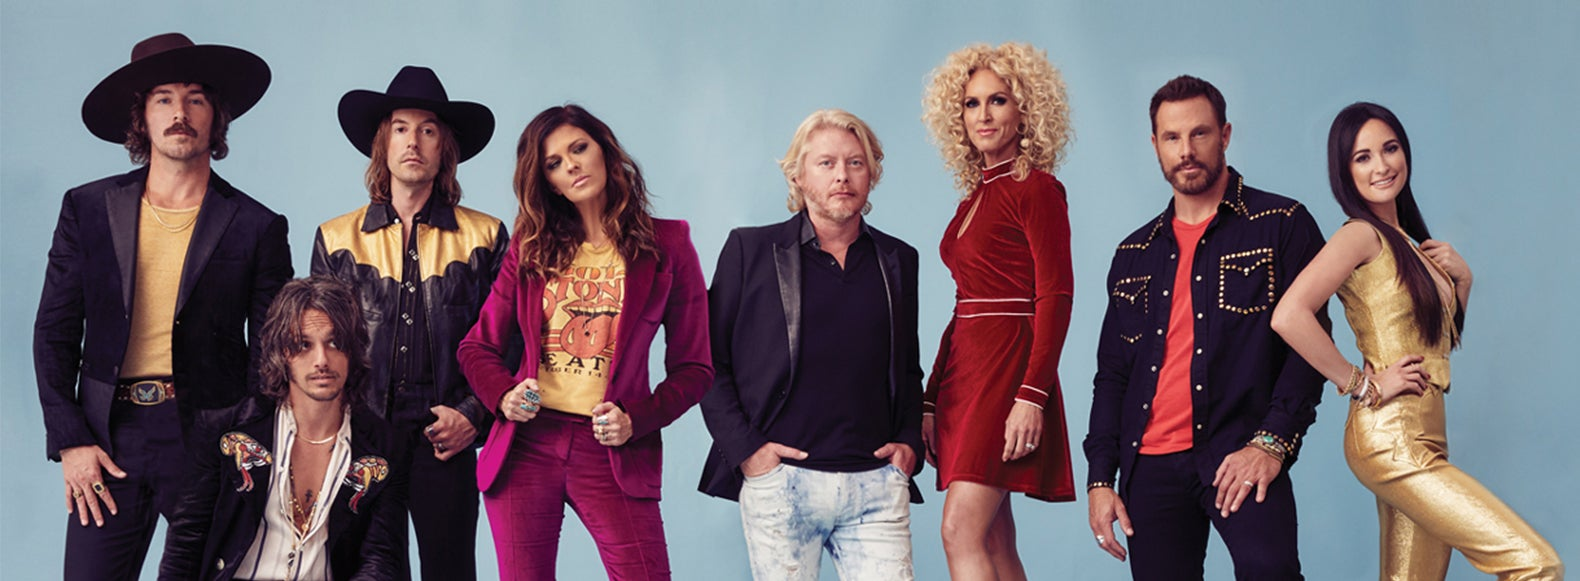 Image result for Little Big Town 2018 Tour